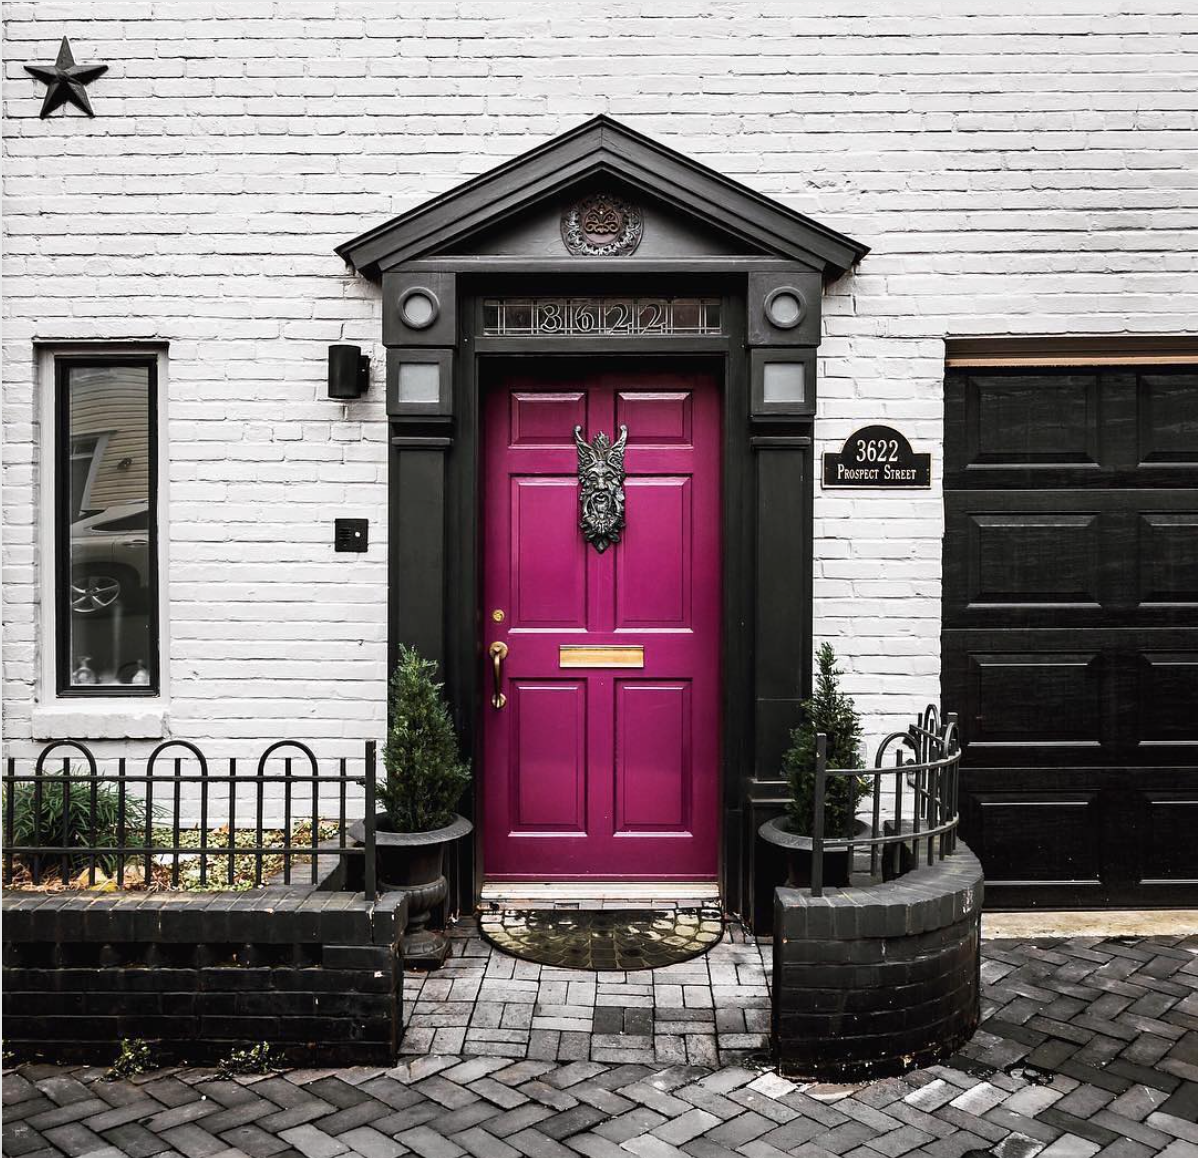 A Front Door I'd Like to Trick or Treat | Interiors for Families